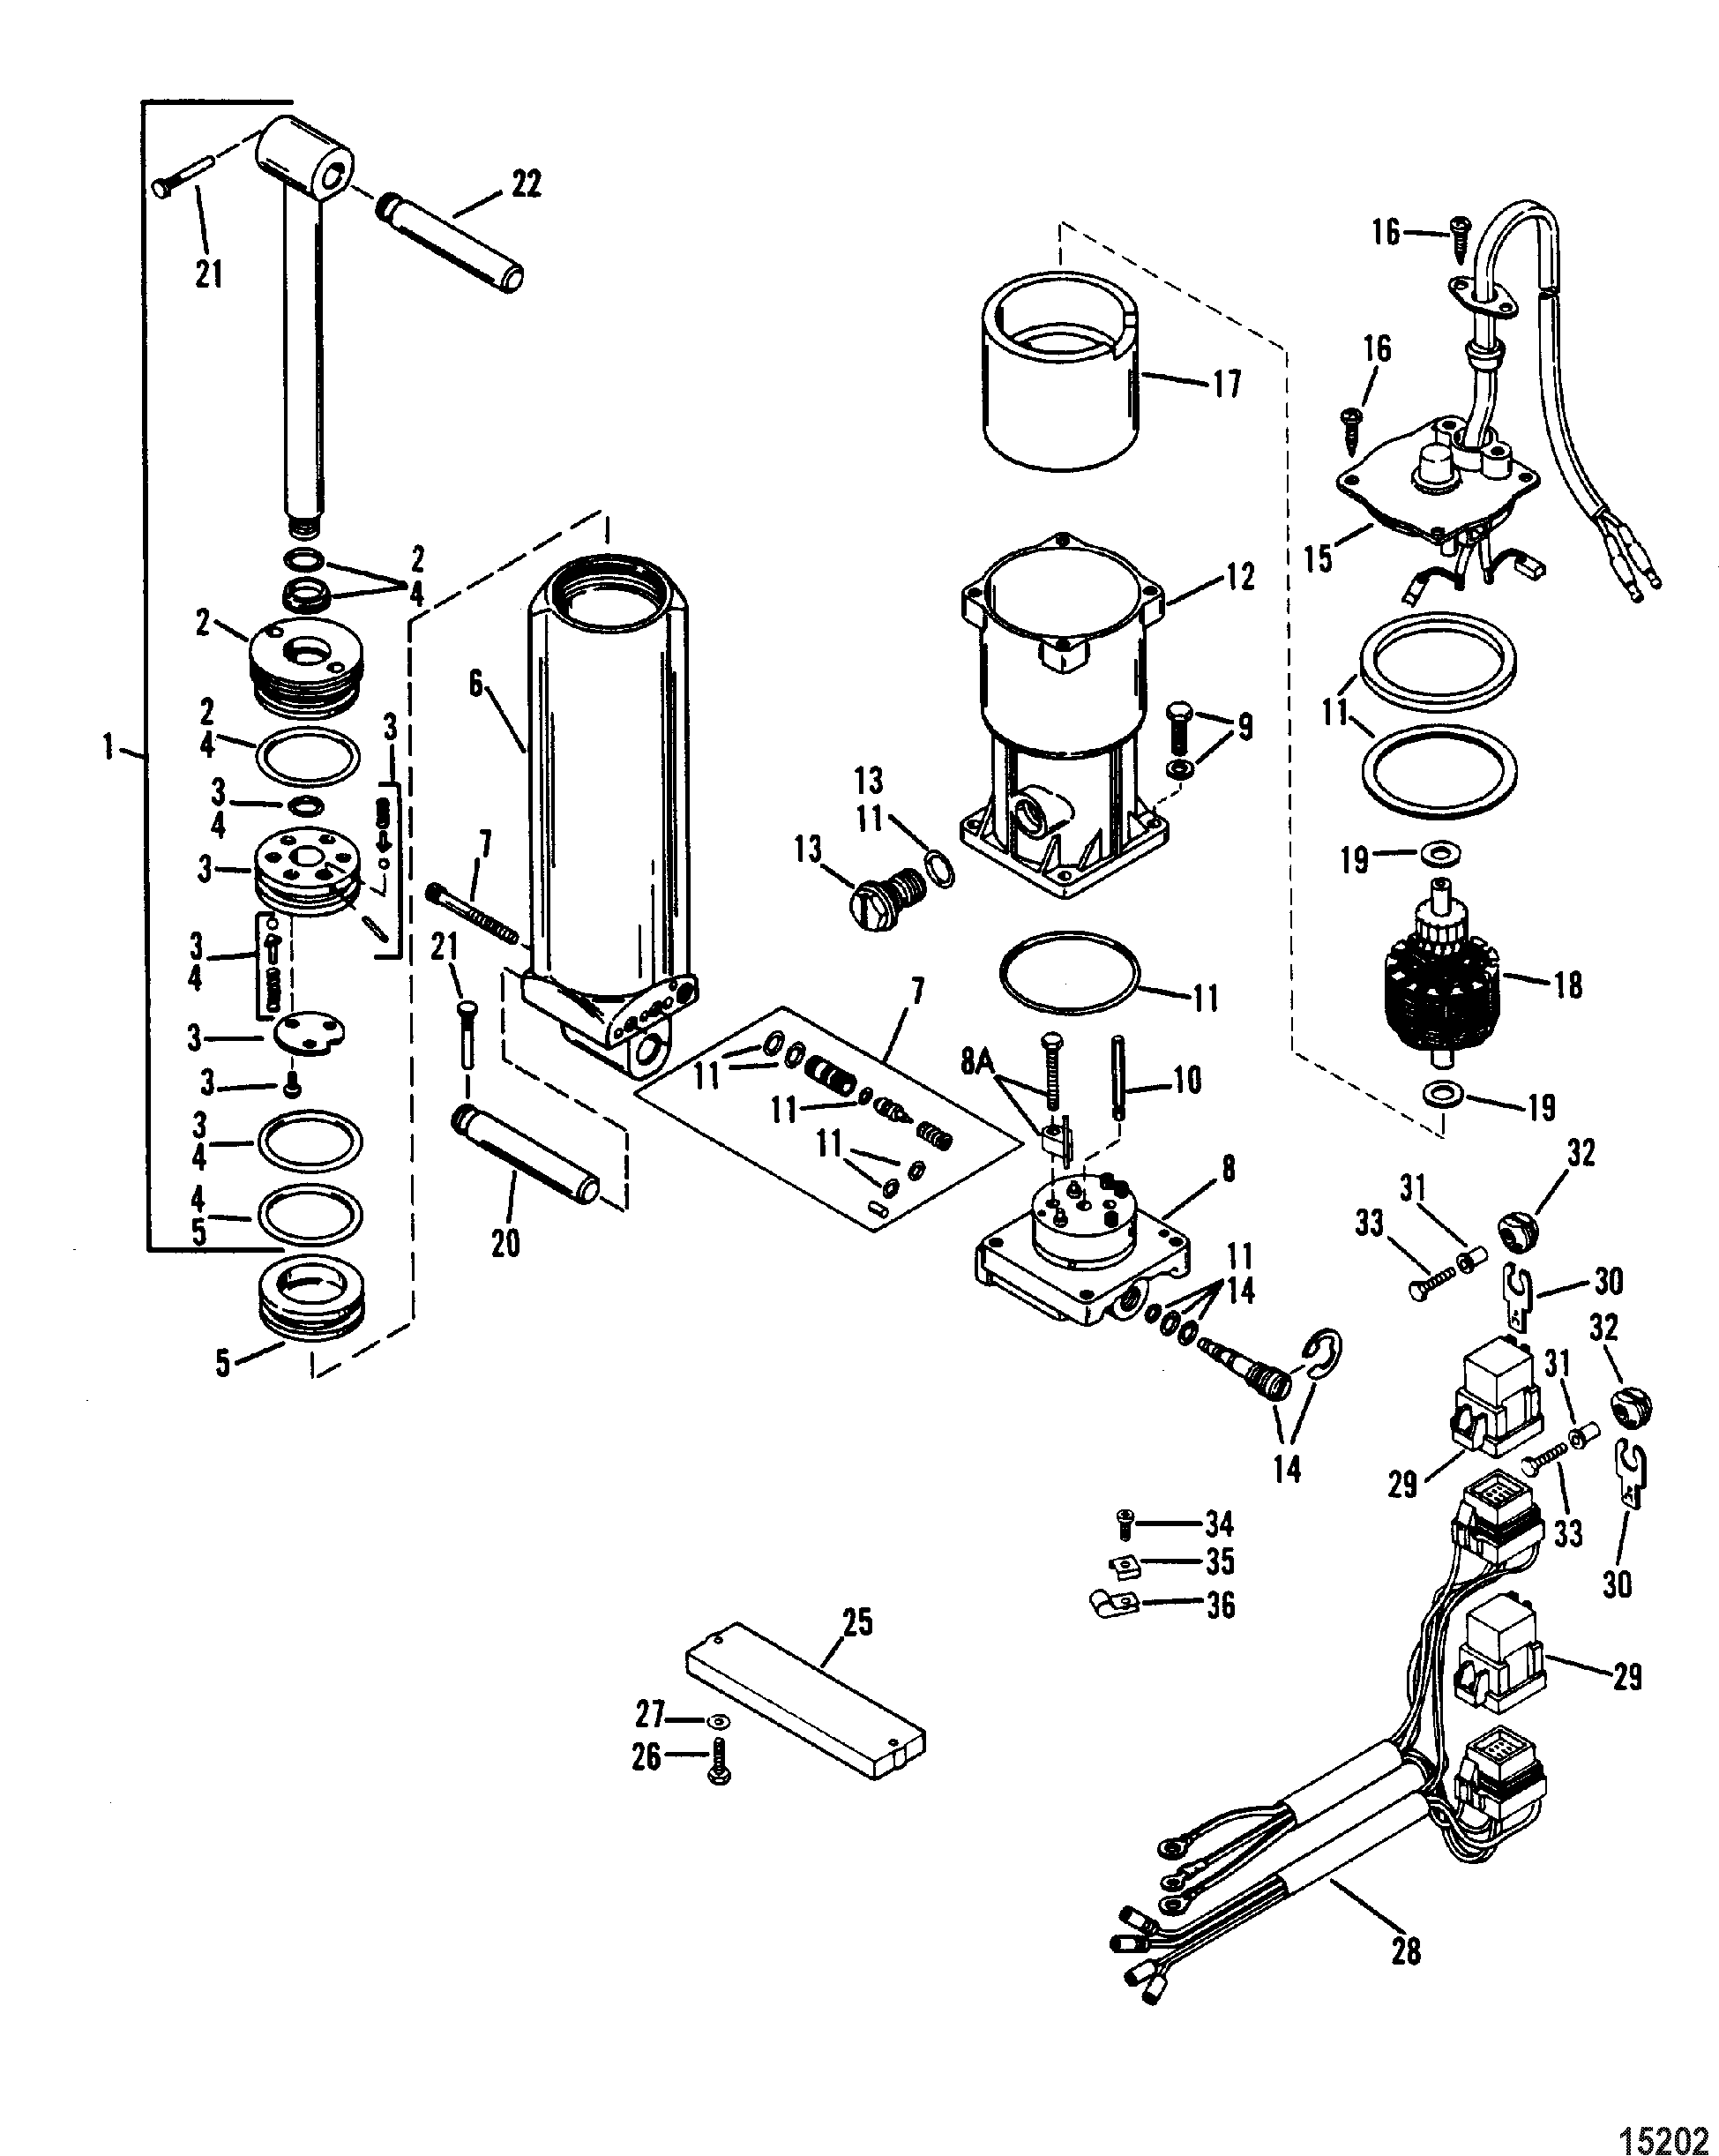 Mercury 115 Hydraulic Trim Wiring Library 90 Diagram Free Download Diagrams Optimax Service Manual Marvelous